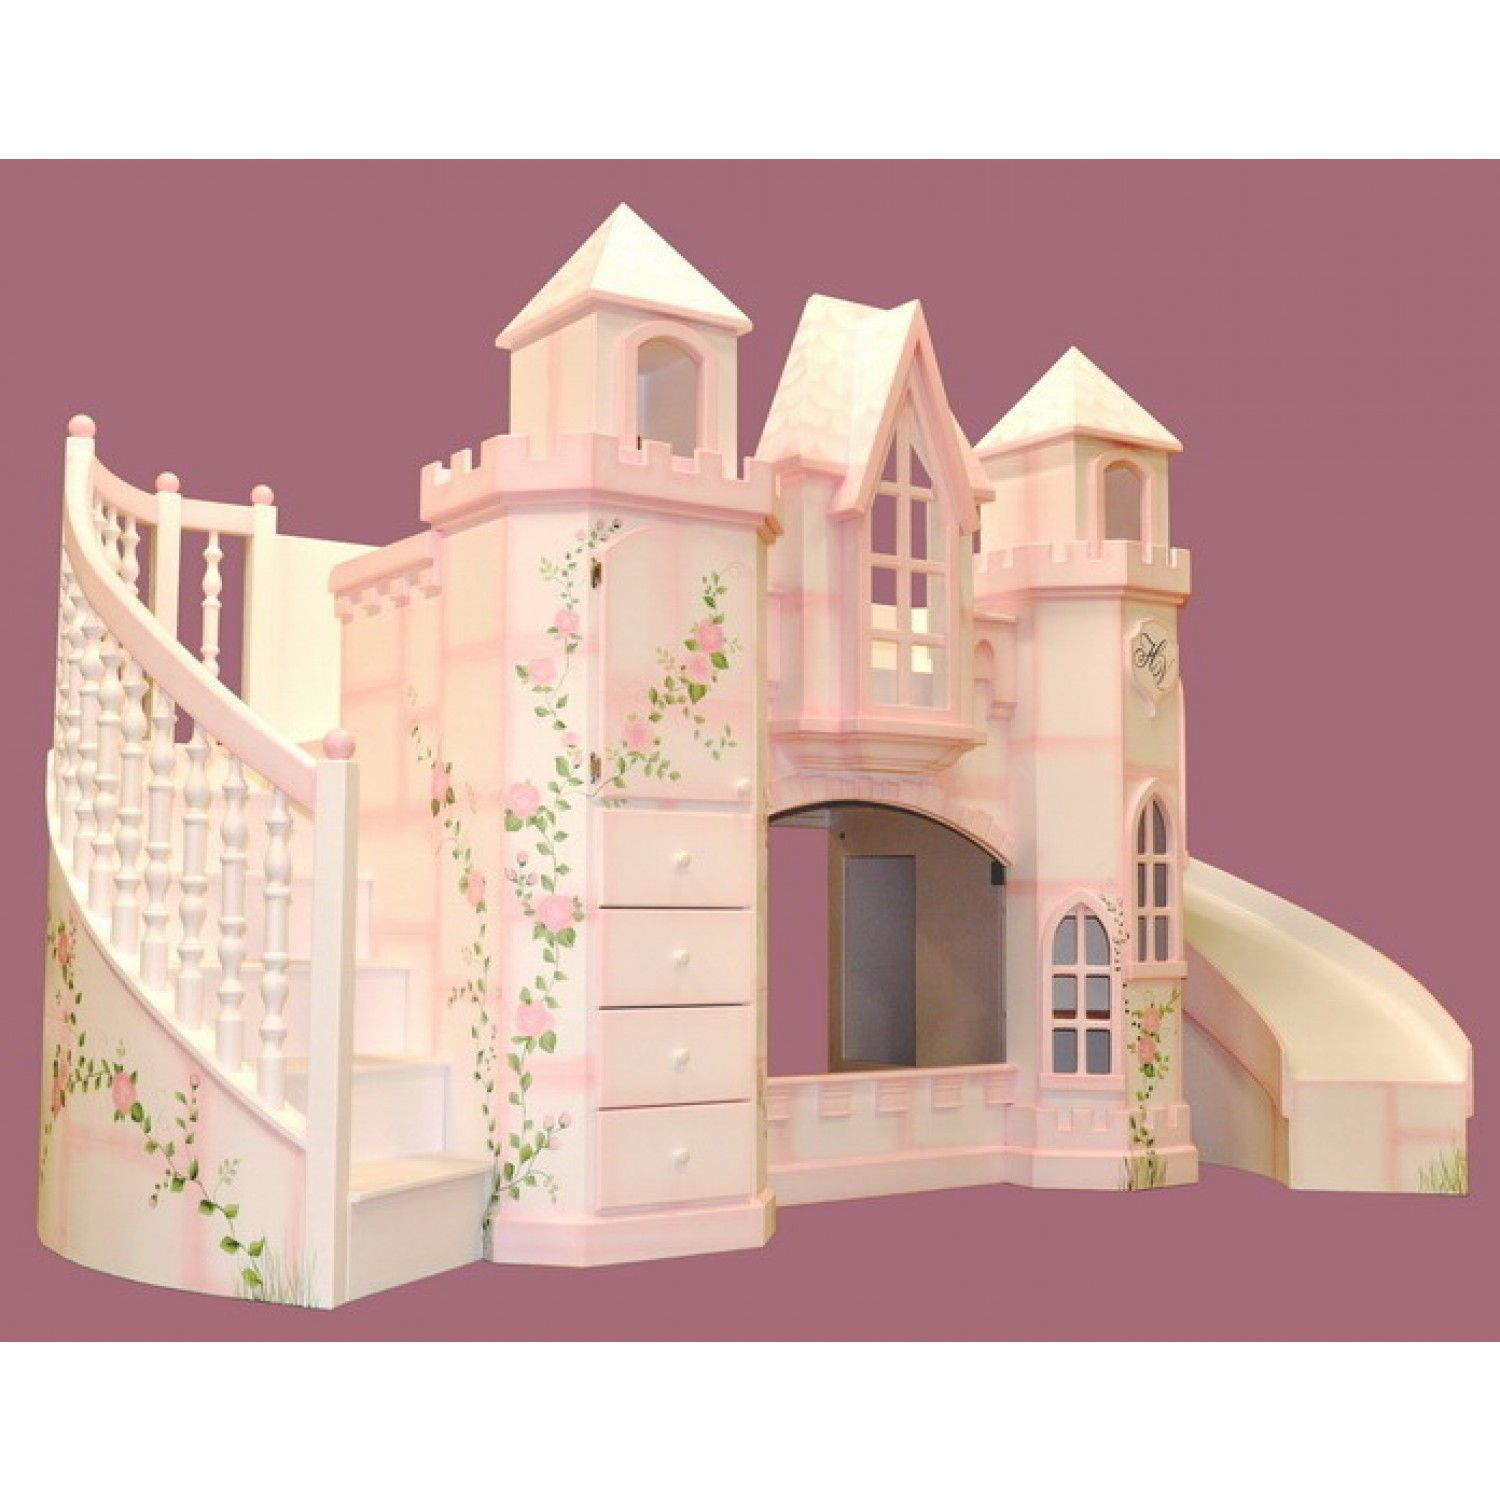 Design Princess Castle Bunk Bed your little princess will feel like royalty in a castle bunk bed with optional loft